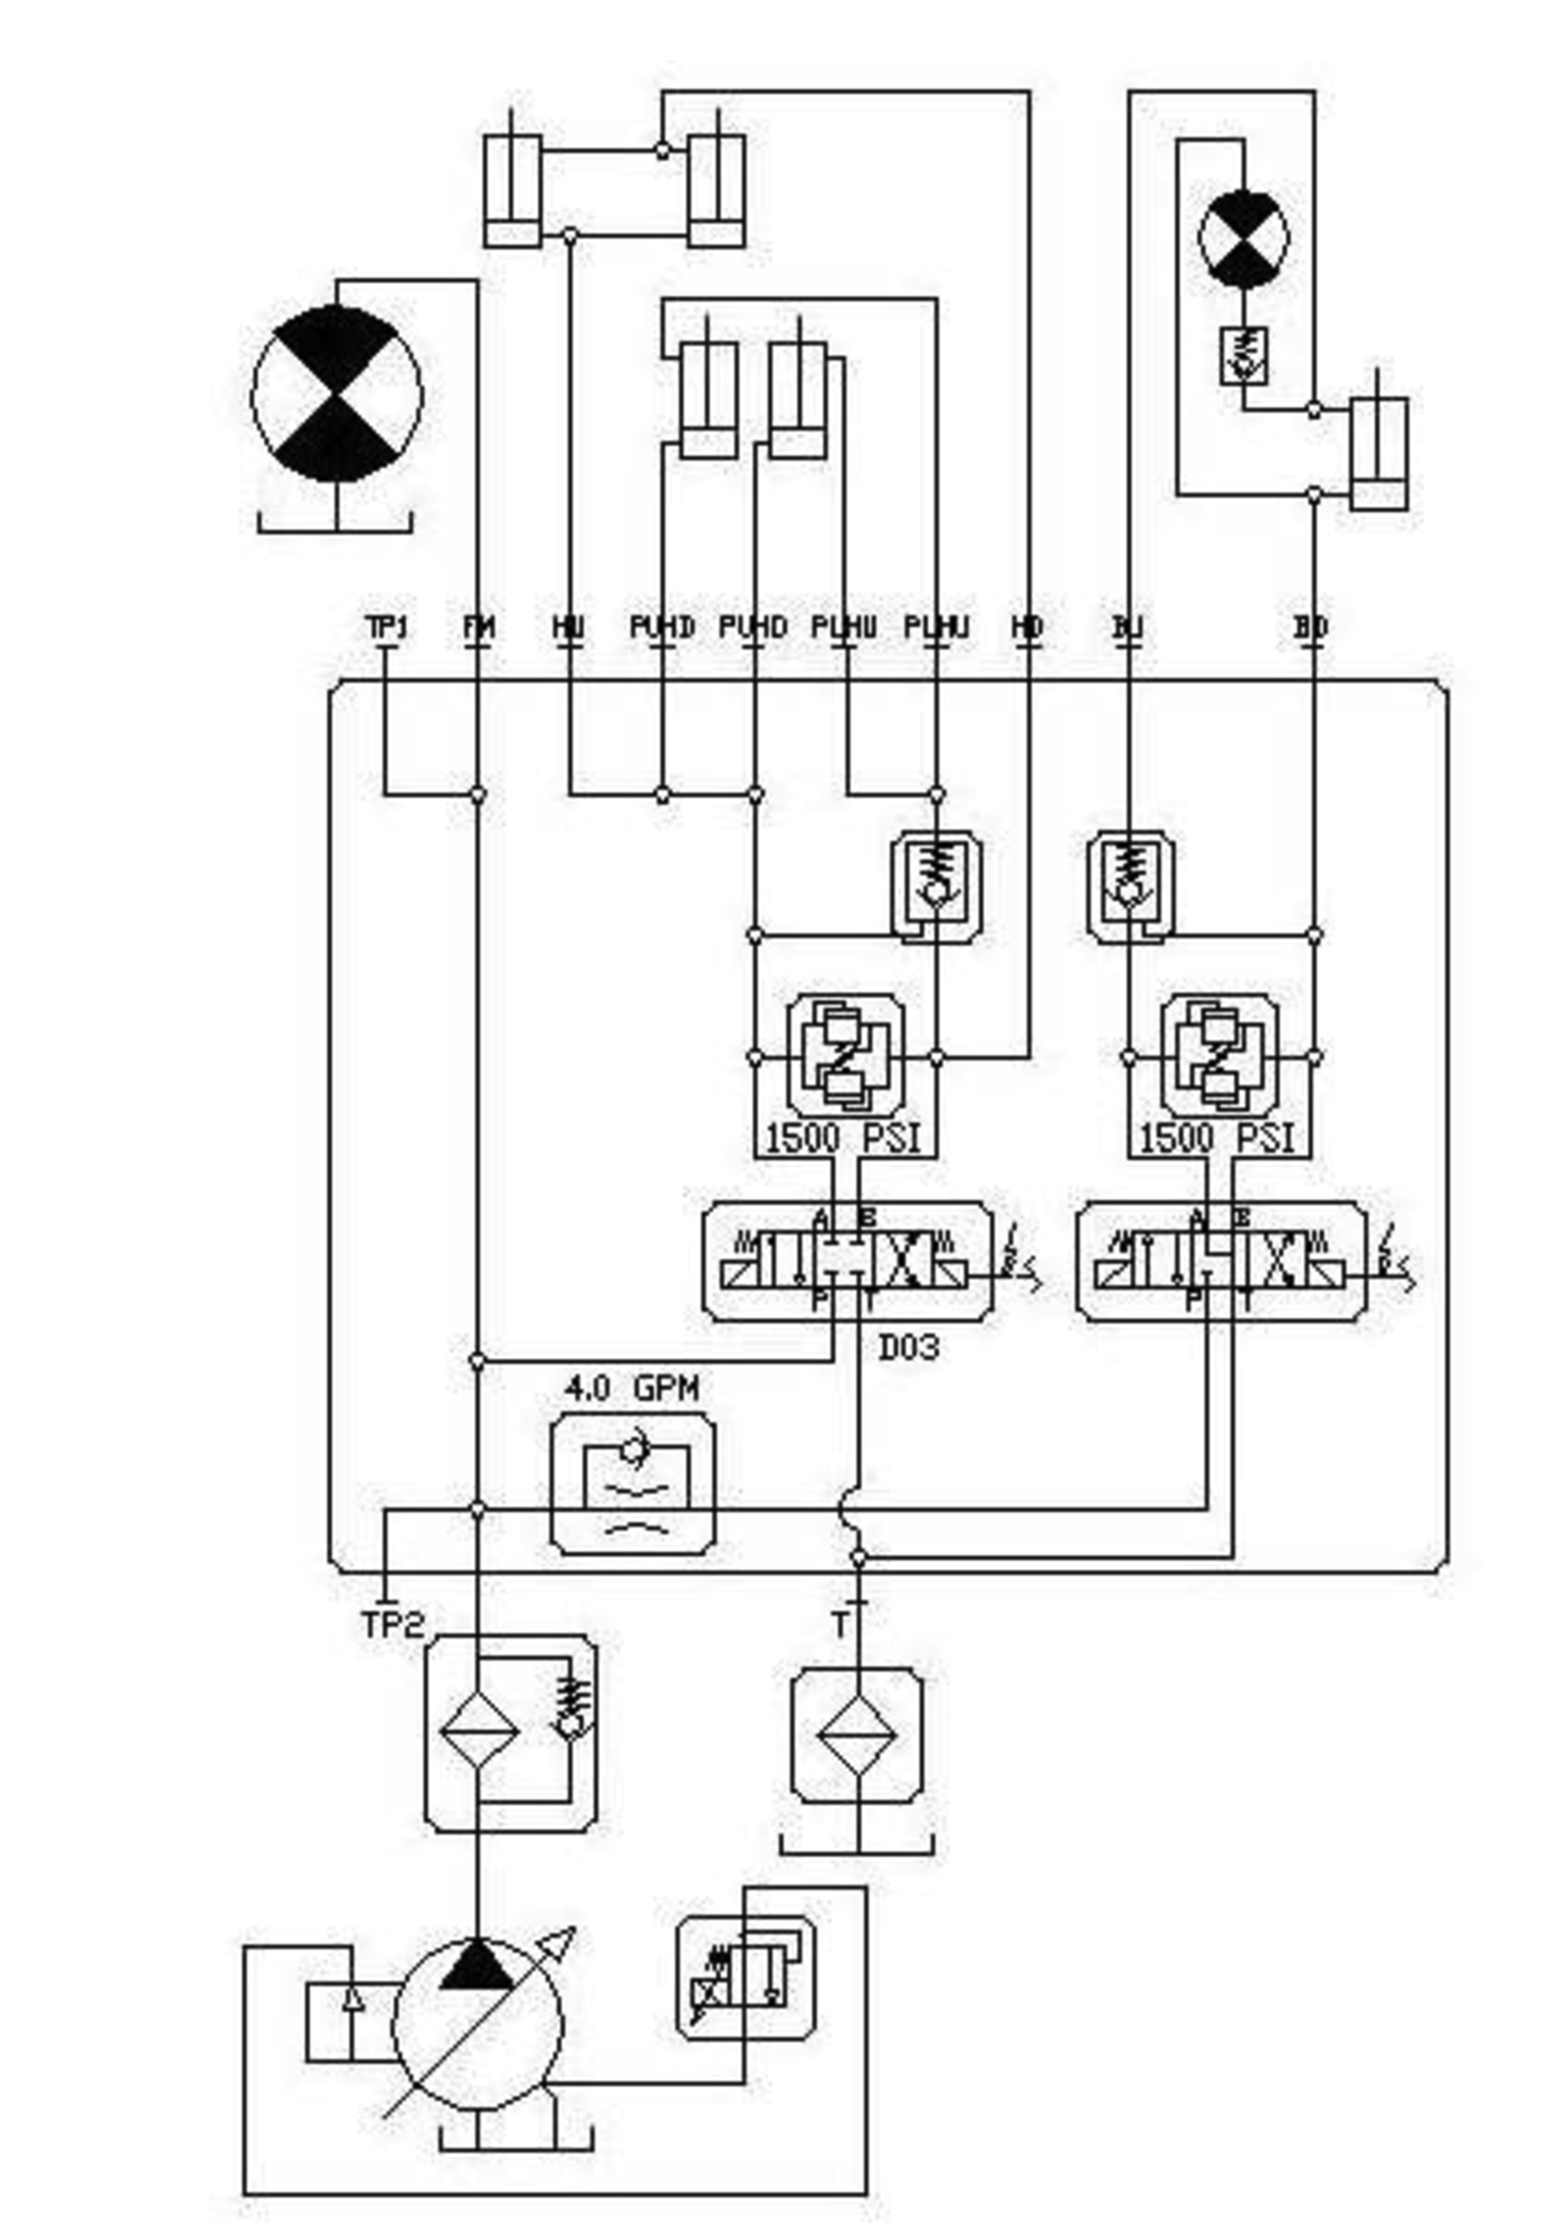 osprey hydraulic schematic hydraulic schematic legend hydraulic schematic #8